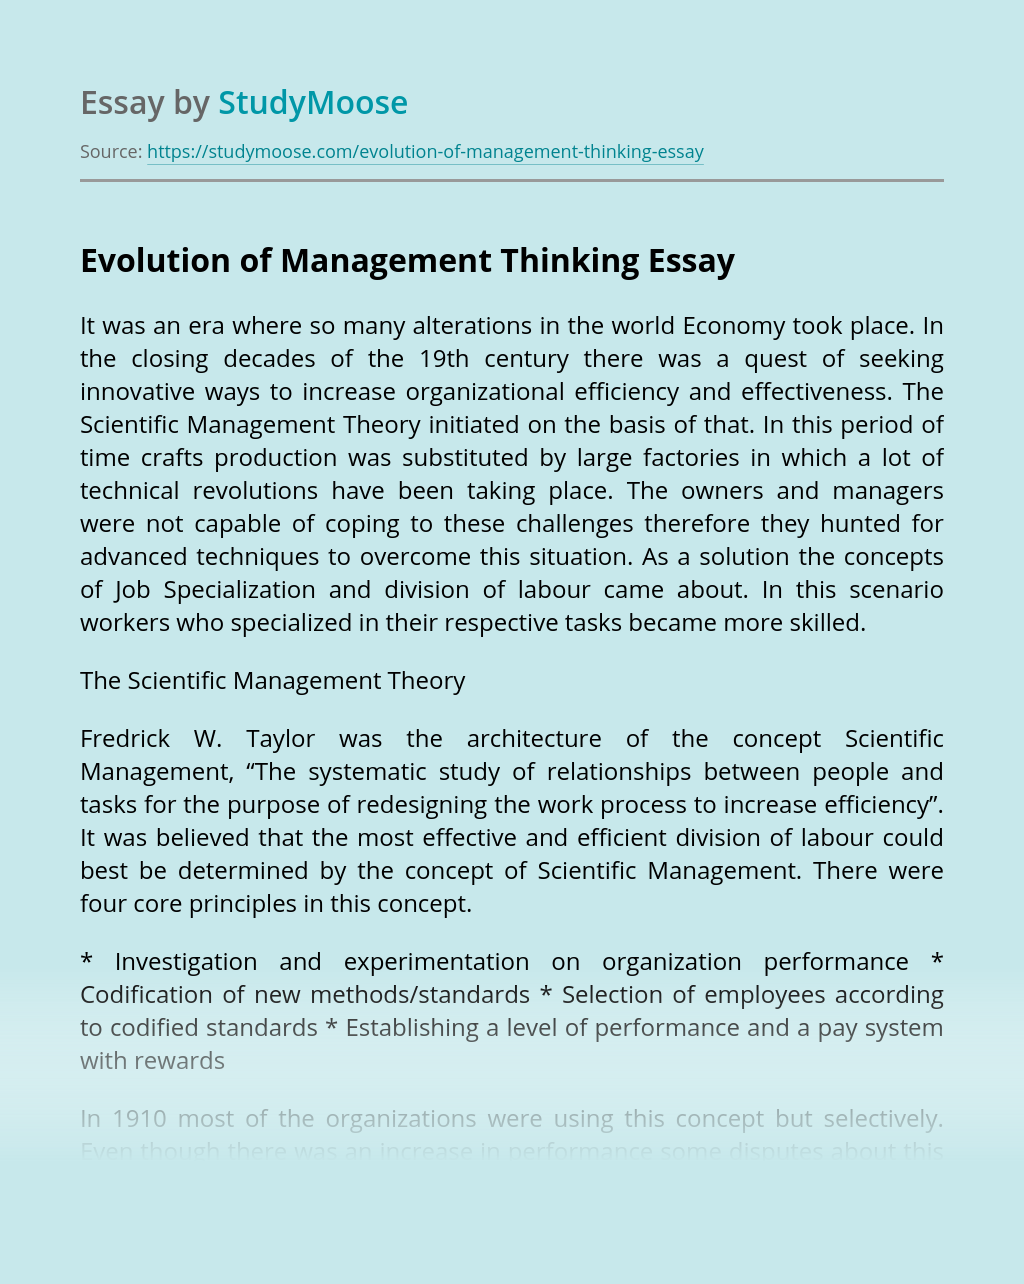 Evolution of Management Thinking